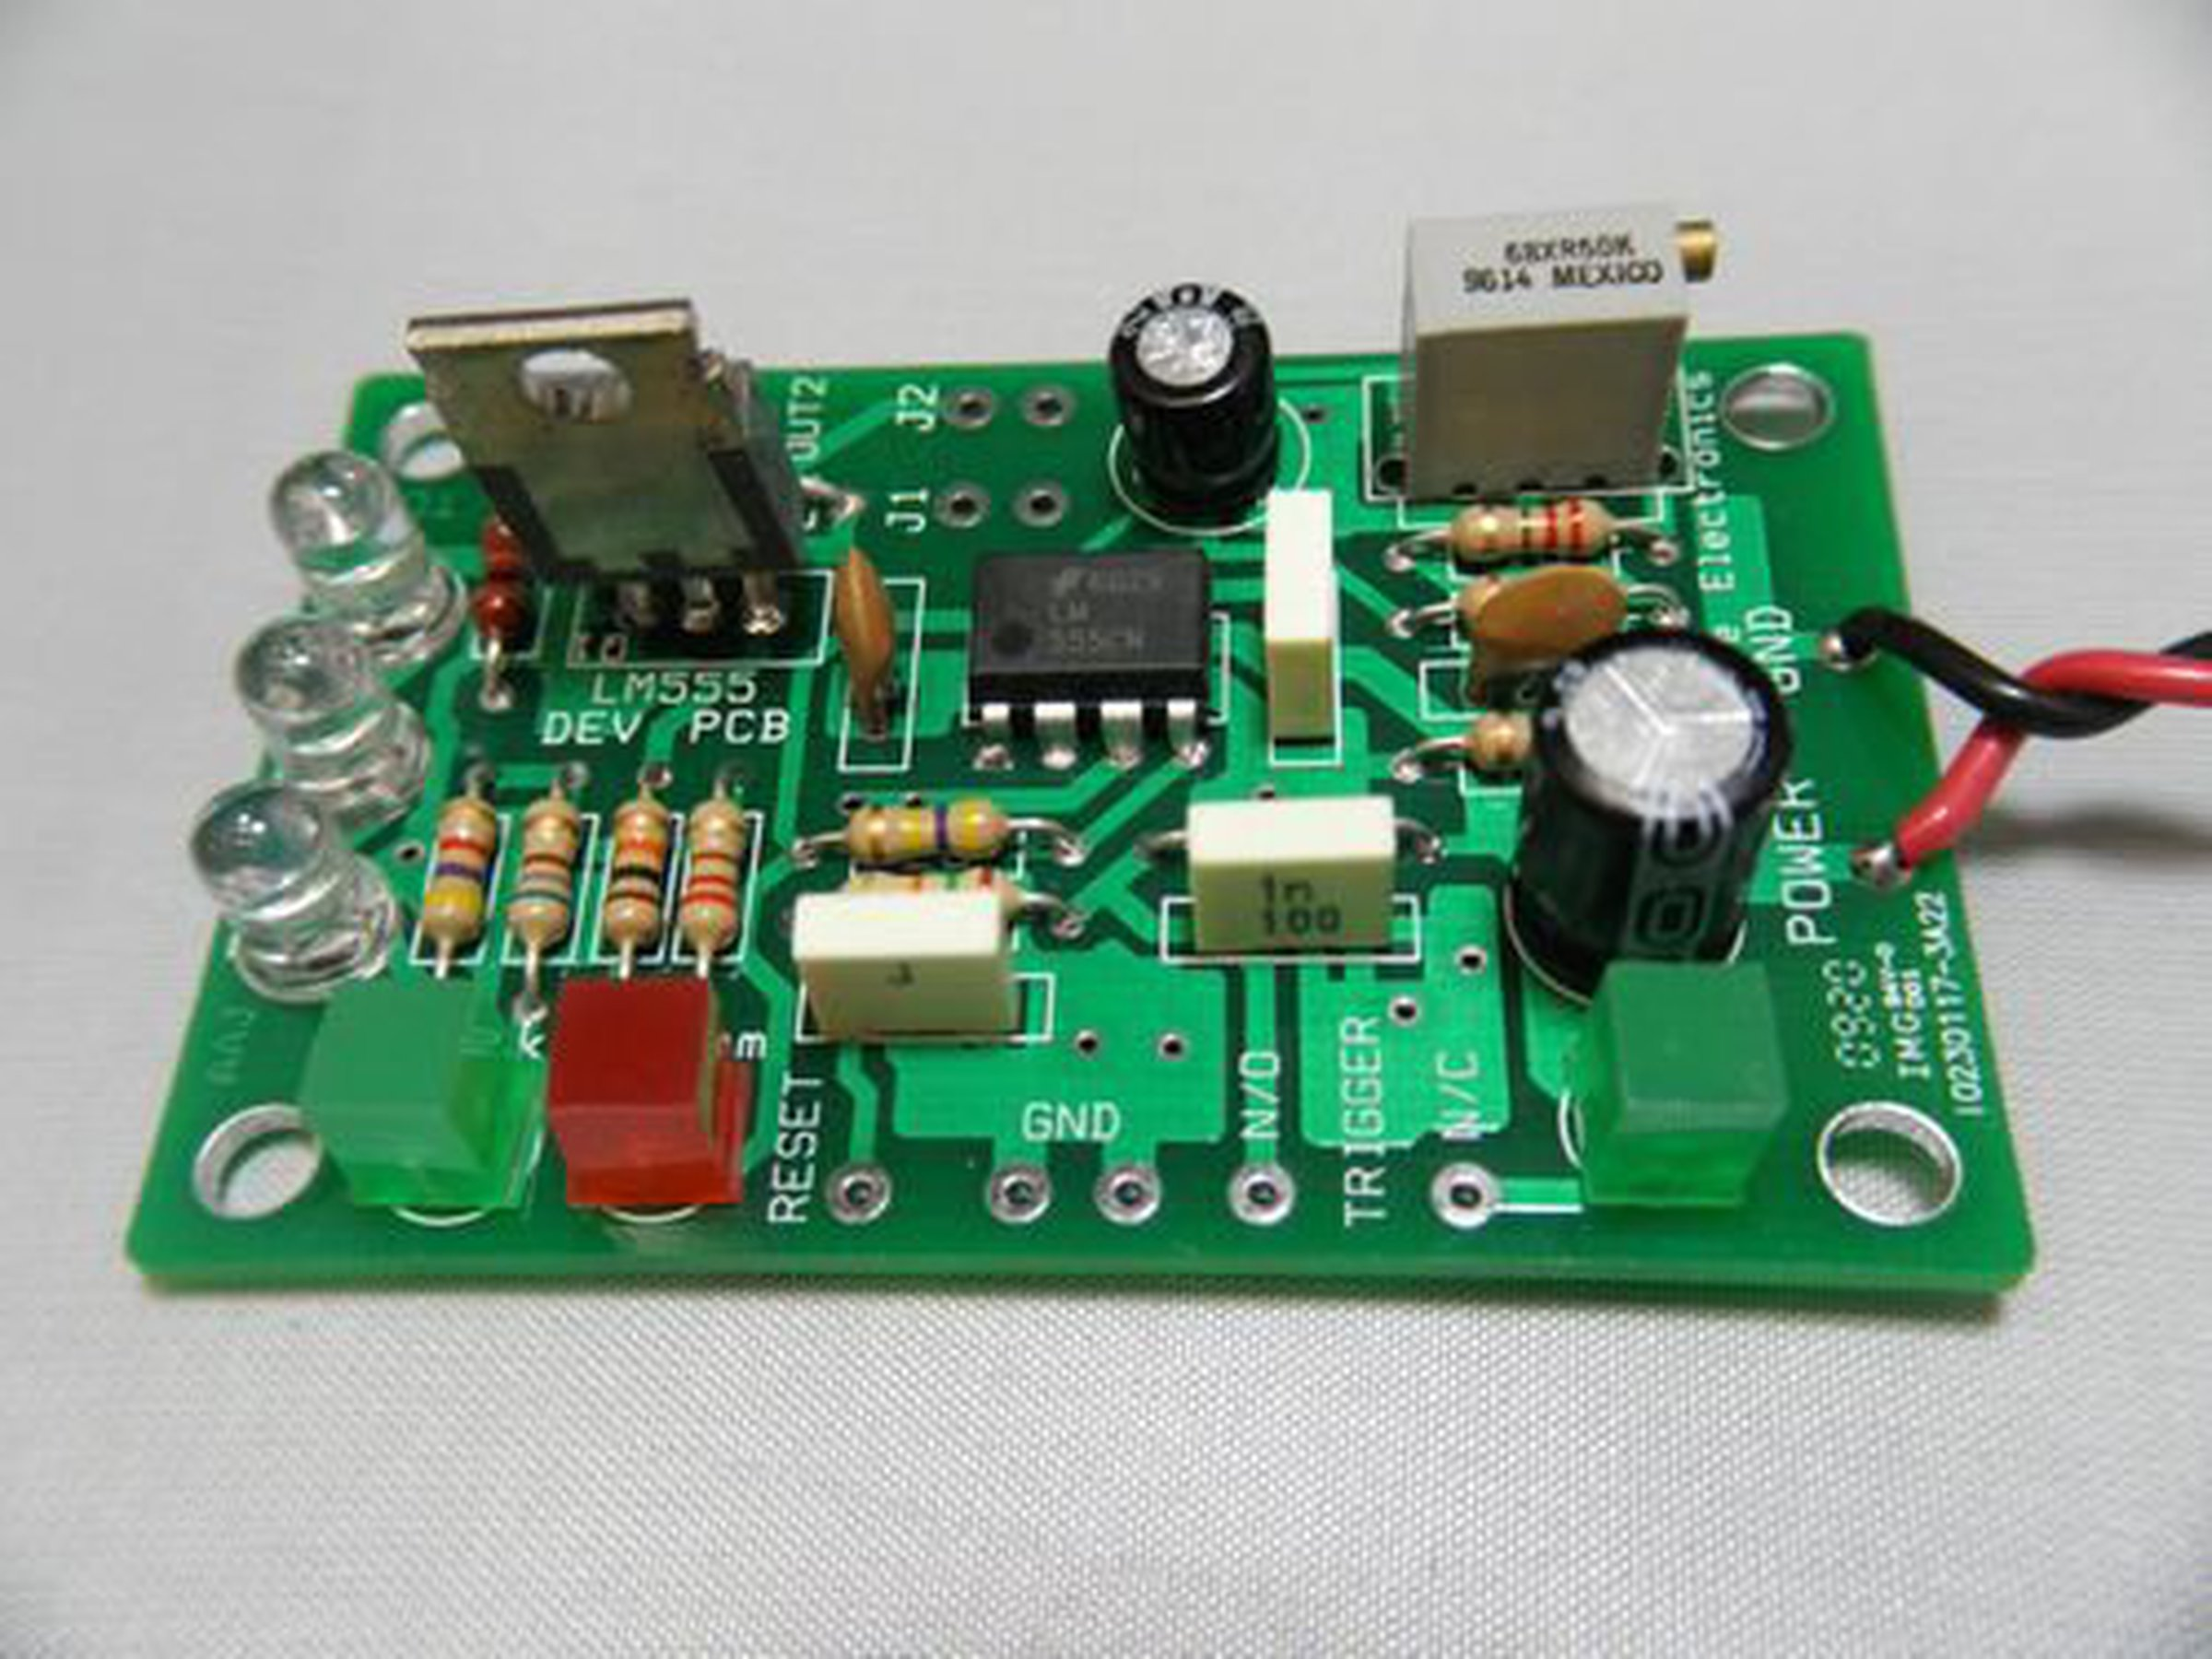 Lm555 Timer Development Kit 1710 From Nightfire Electronics Llc 555 Monostable Circuit Electrical Engineering 1